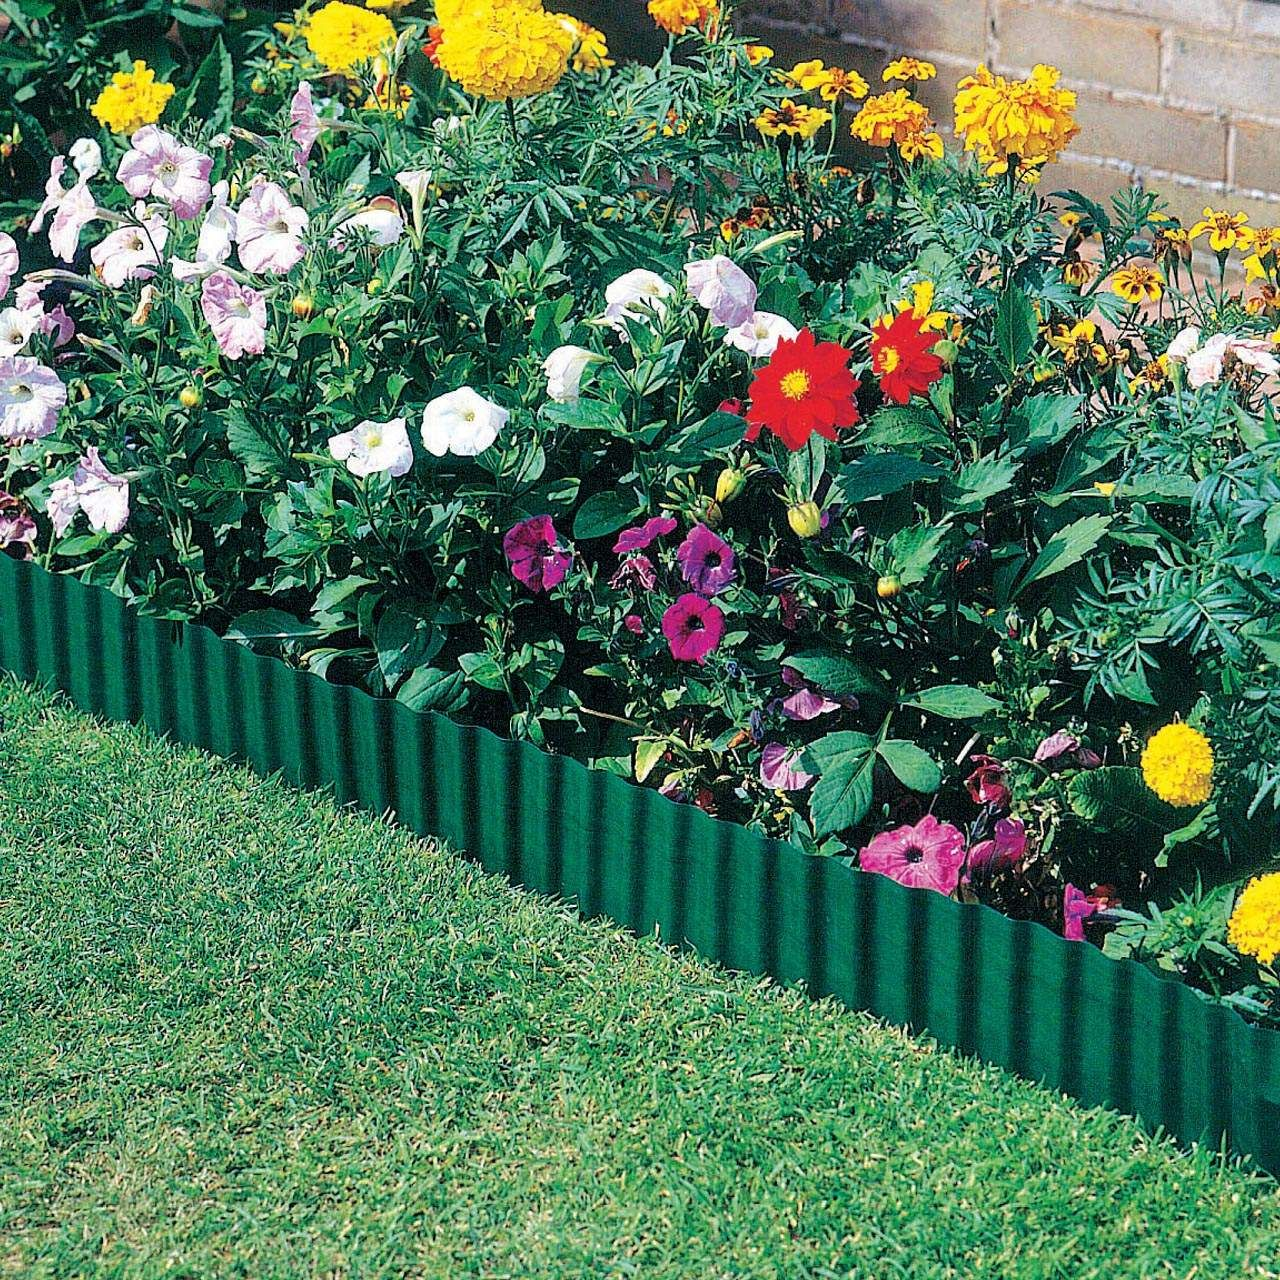 Install Plastic Edging So That Only A Half Or Third Of The Top Rounded Edge Is Visible Gardendesign Gardening Edg Diy Lawn Gardening Design Diy Lawn Edging